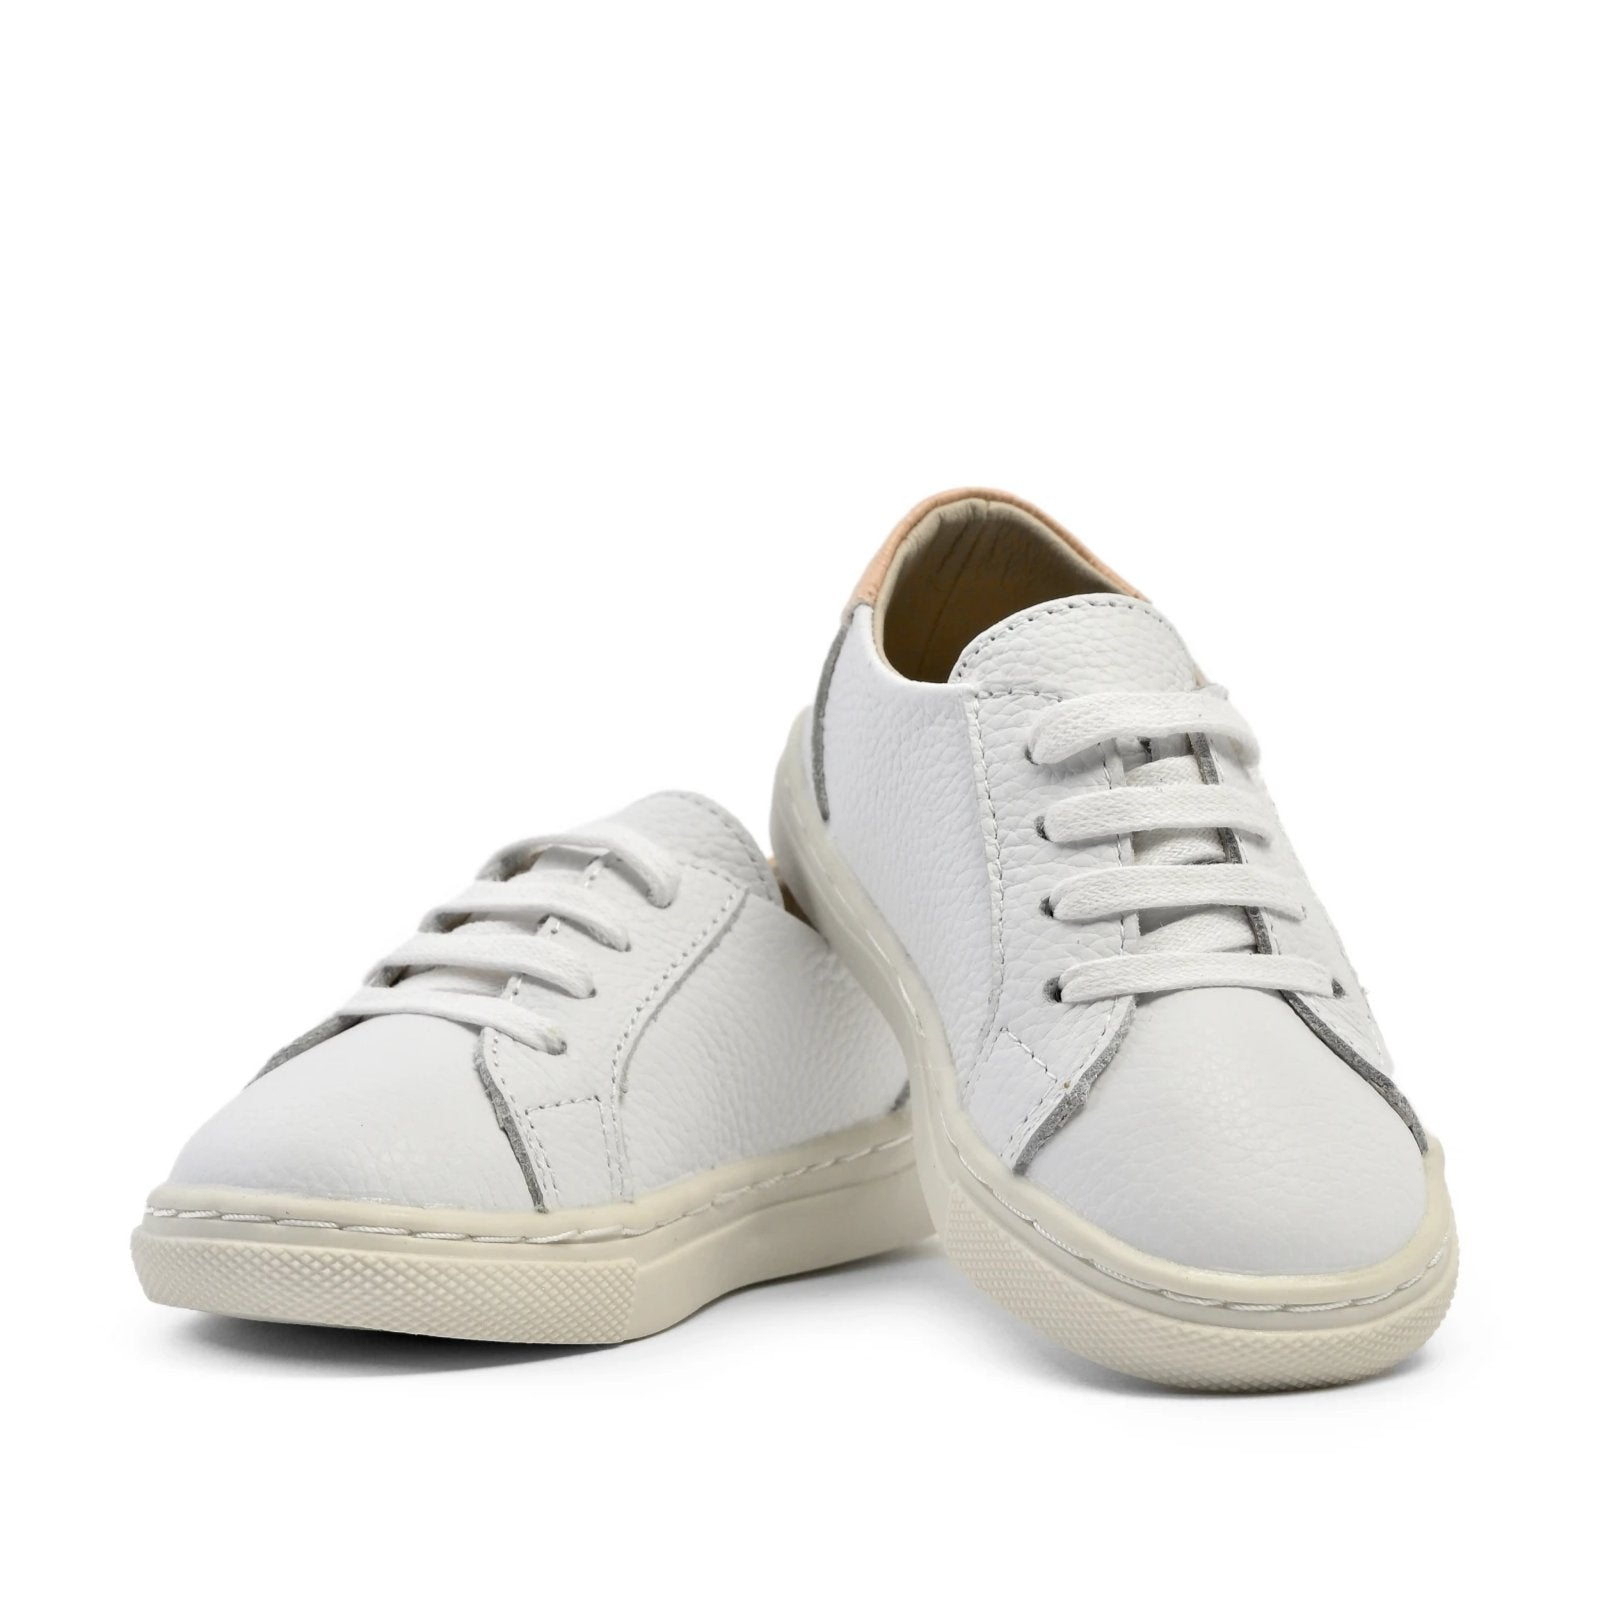 White - Low Top Sneakers